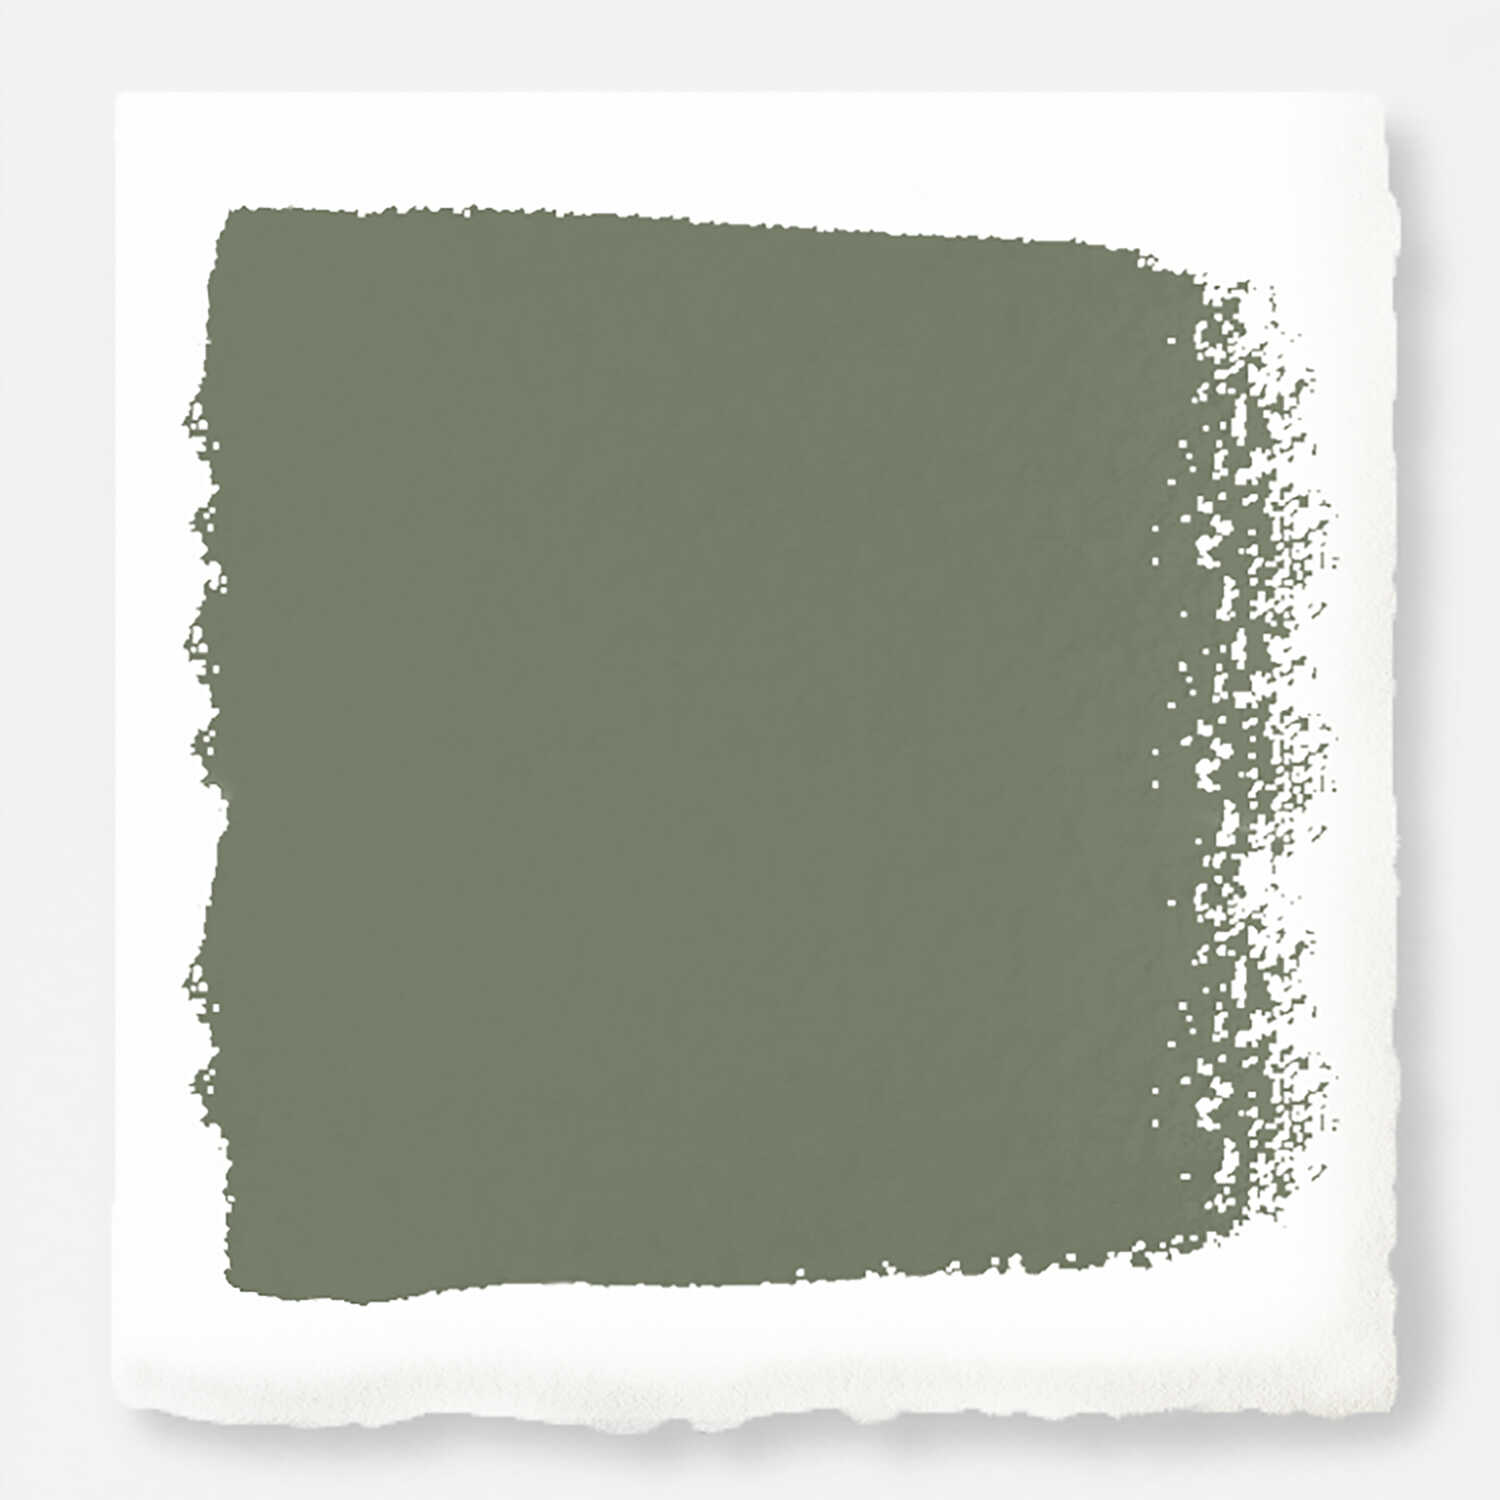 Magnolia Home  Semi-Gloss  Bespoke  Green  Exterior Paint and Primer  1 gal.